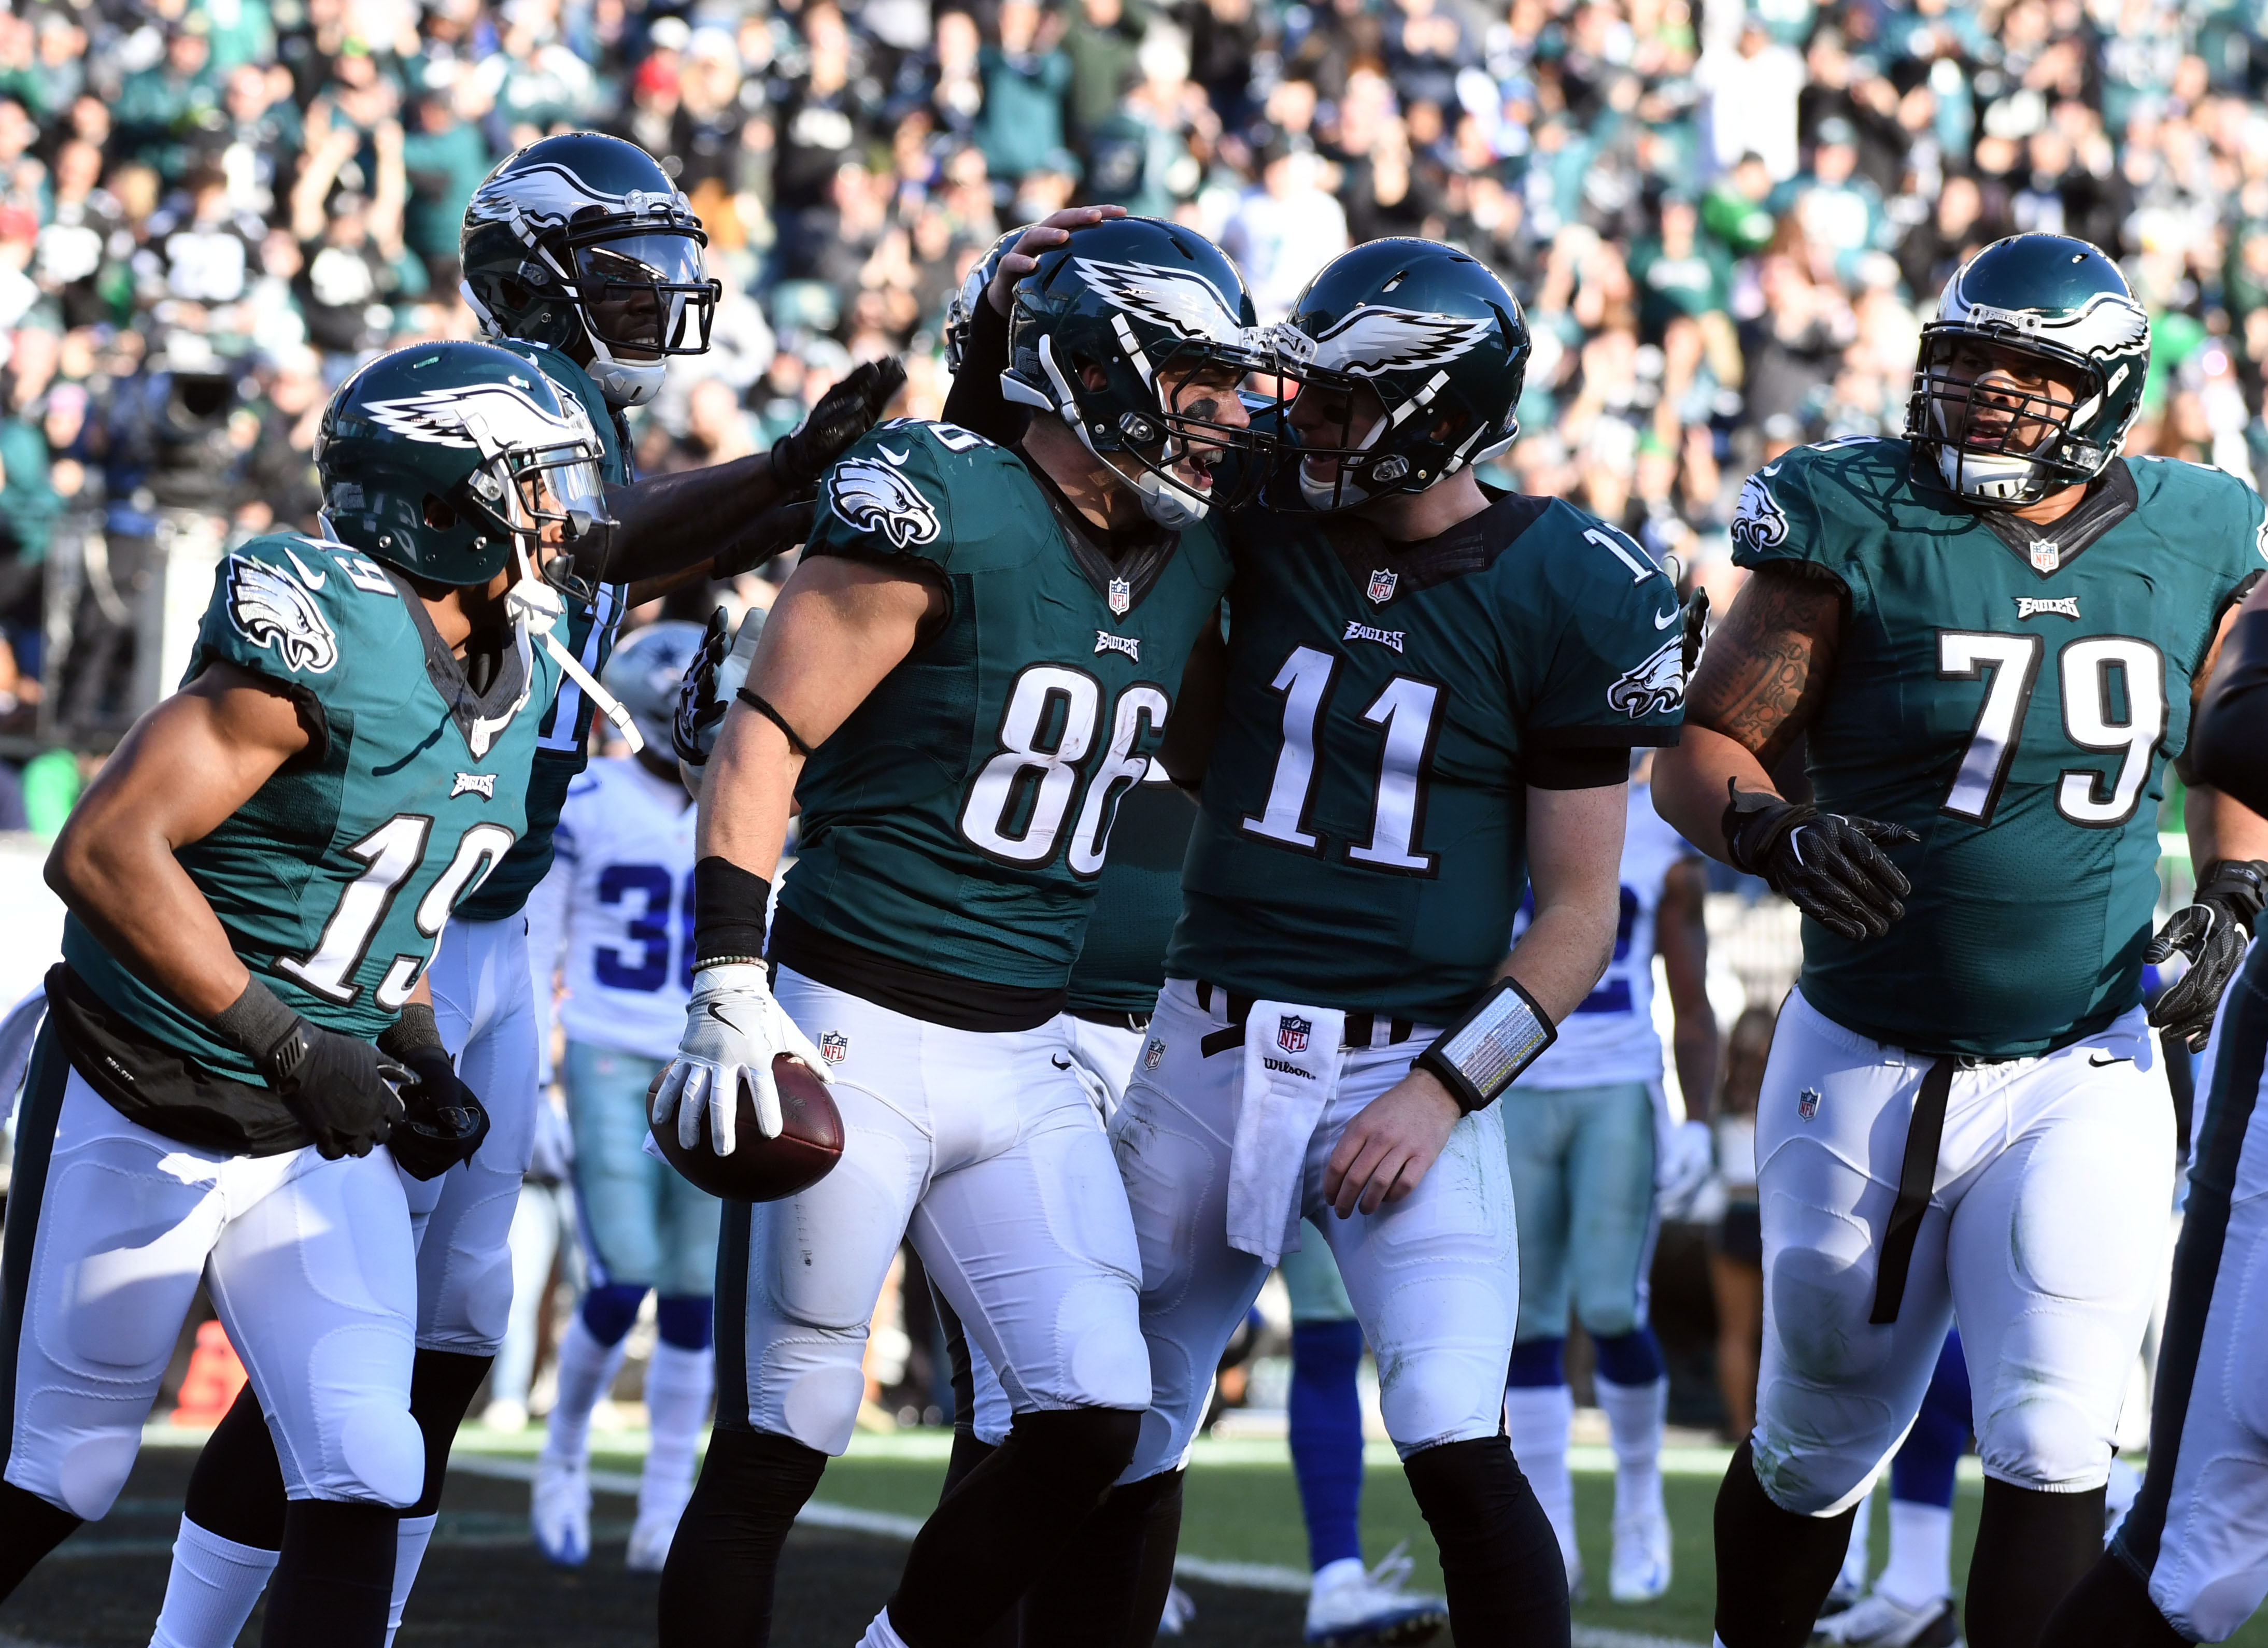 9781390-nfl-dallas-cowboys-at-philadelphia-eagles